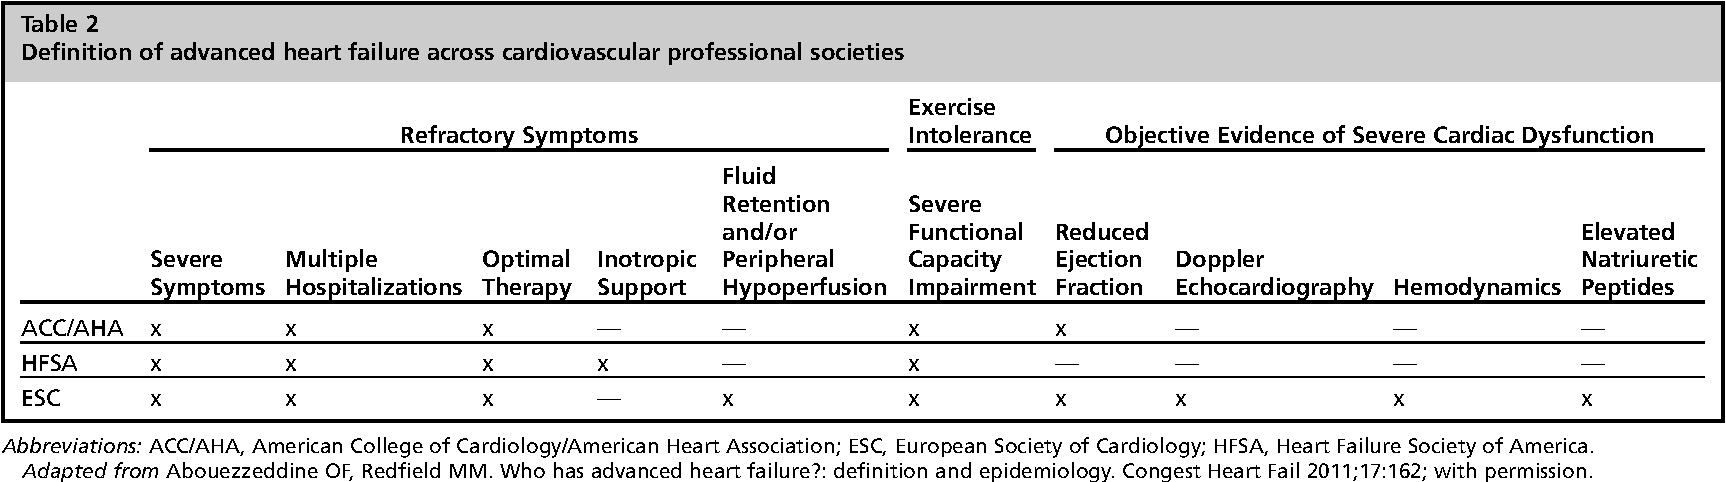 Table 2 from Advanced Heart Failure: Prevalence, Natural